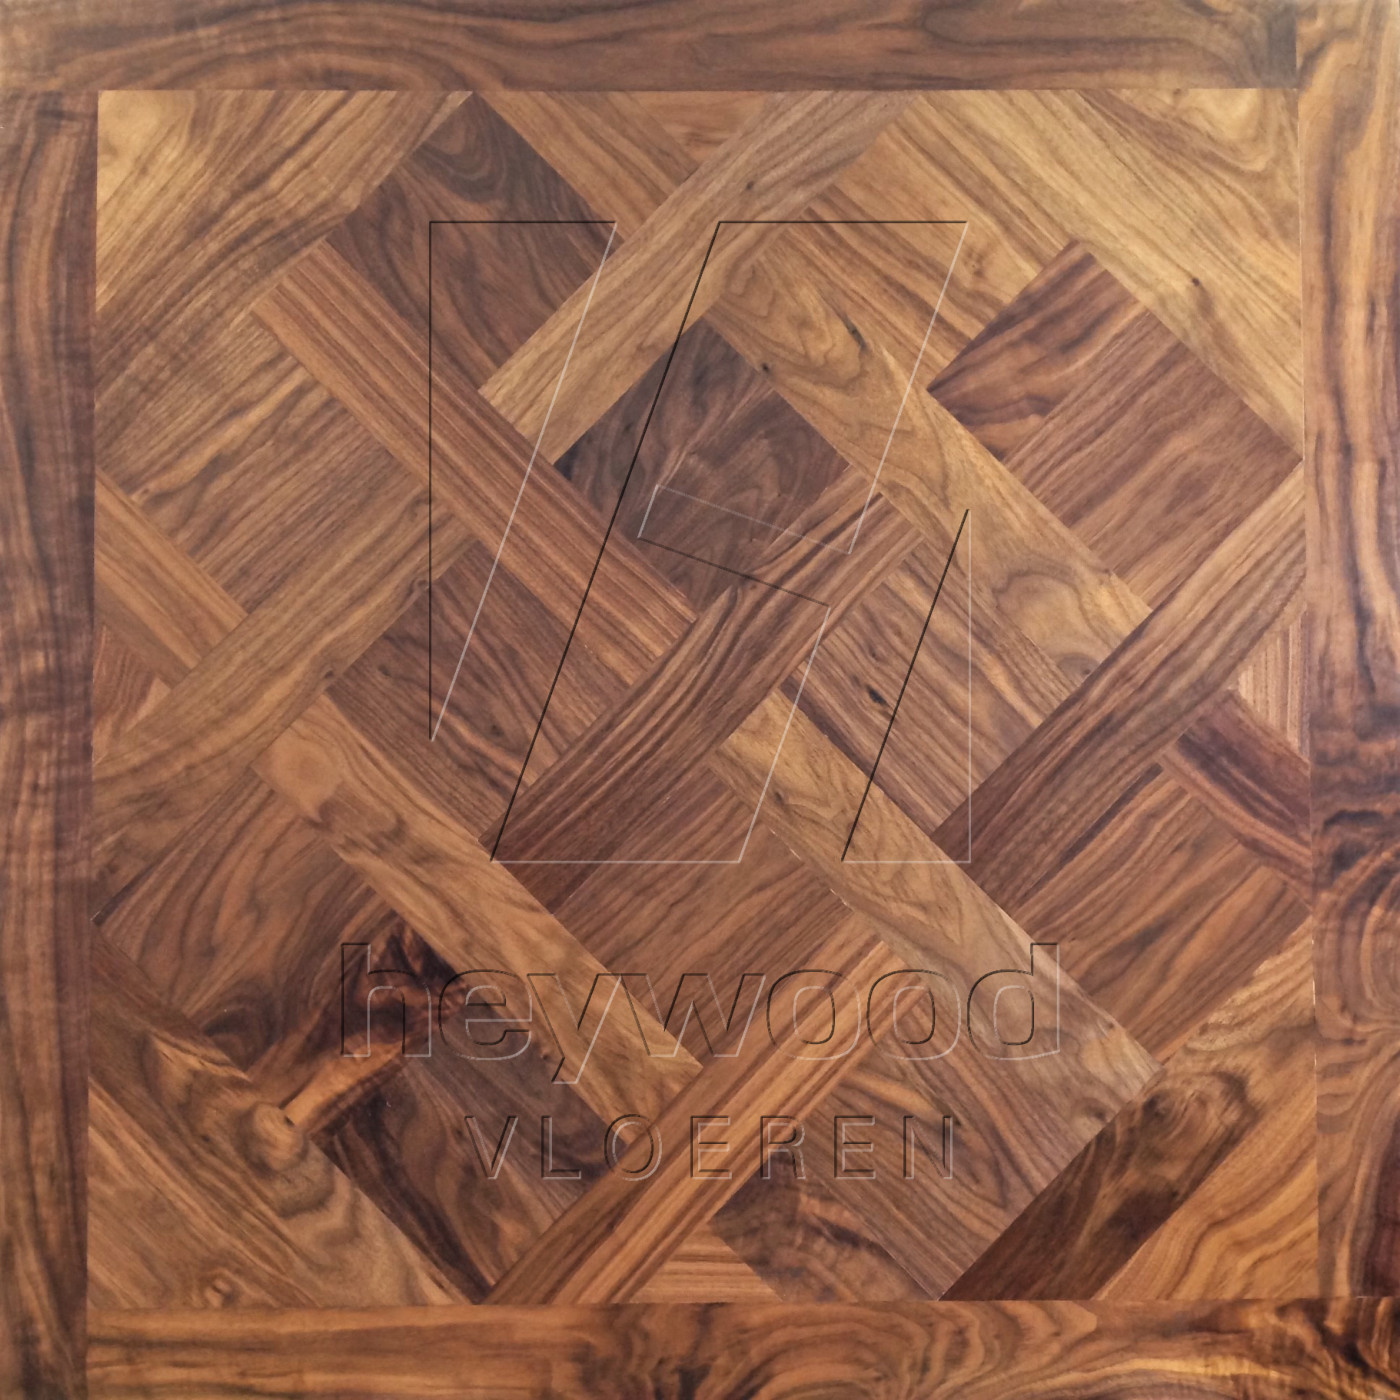 Walnut Versailles, Fas grade, Osmo 3032 oiled in Floor Panels & 3D Wall Panels of Pattern & Panel Floors